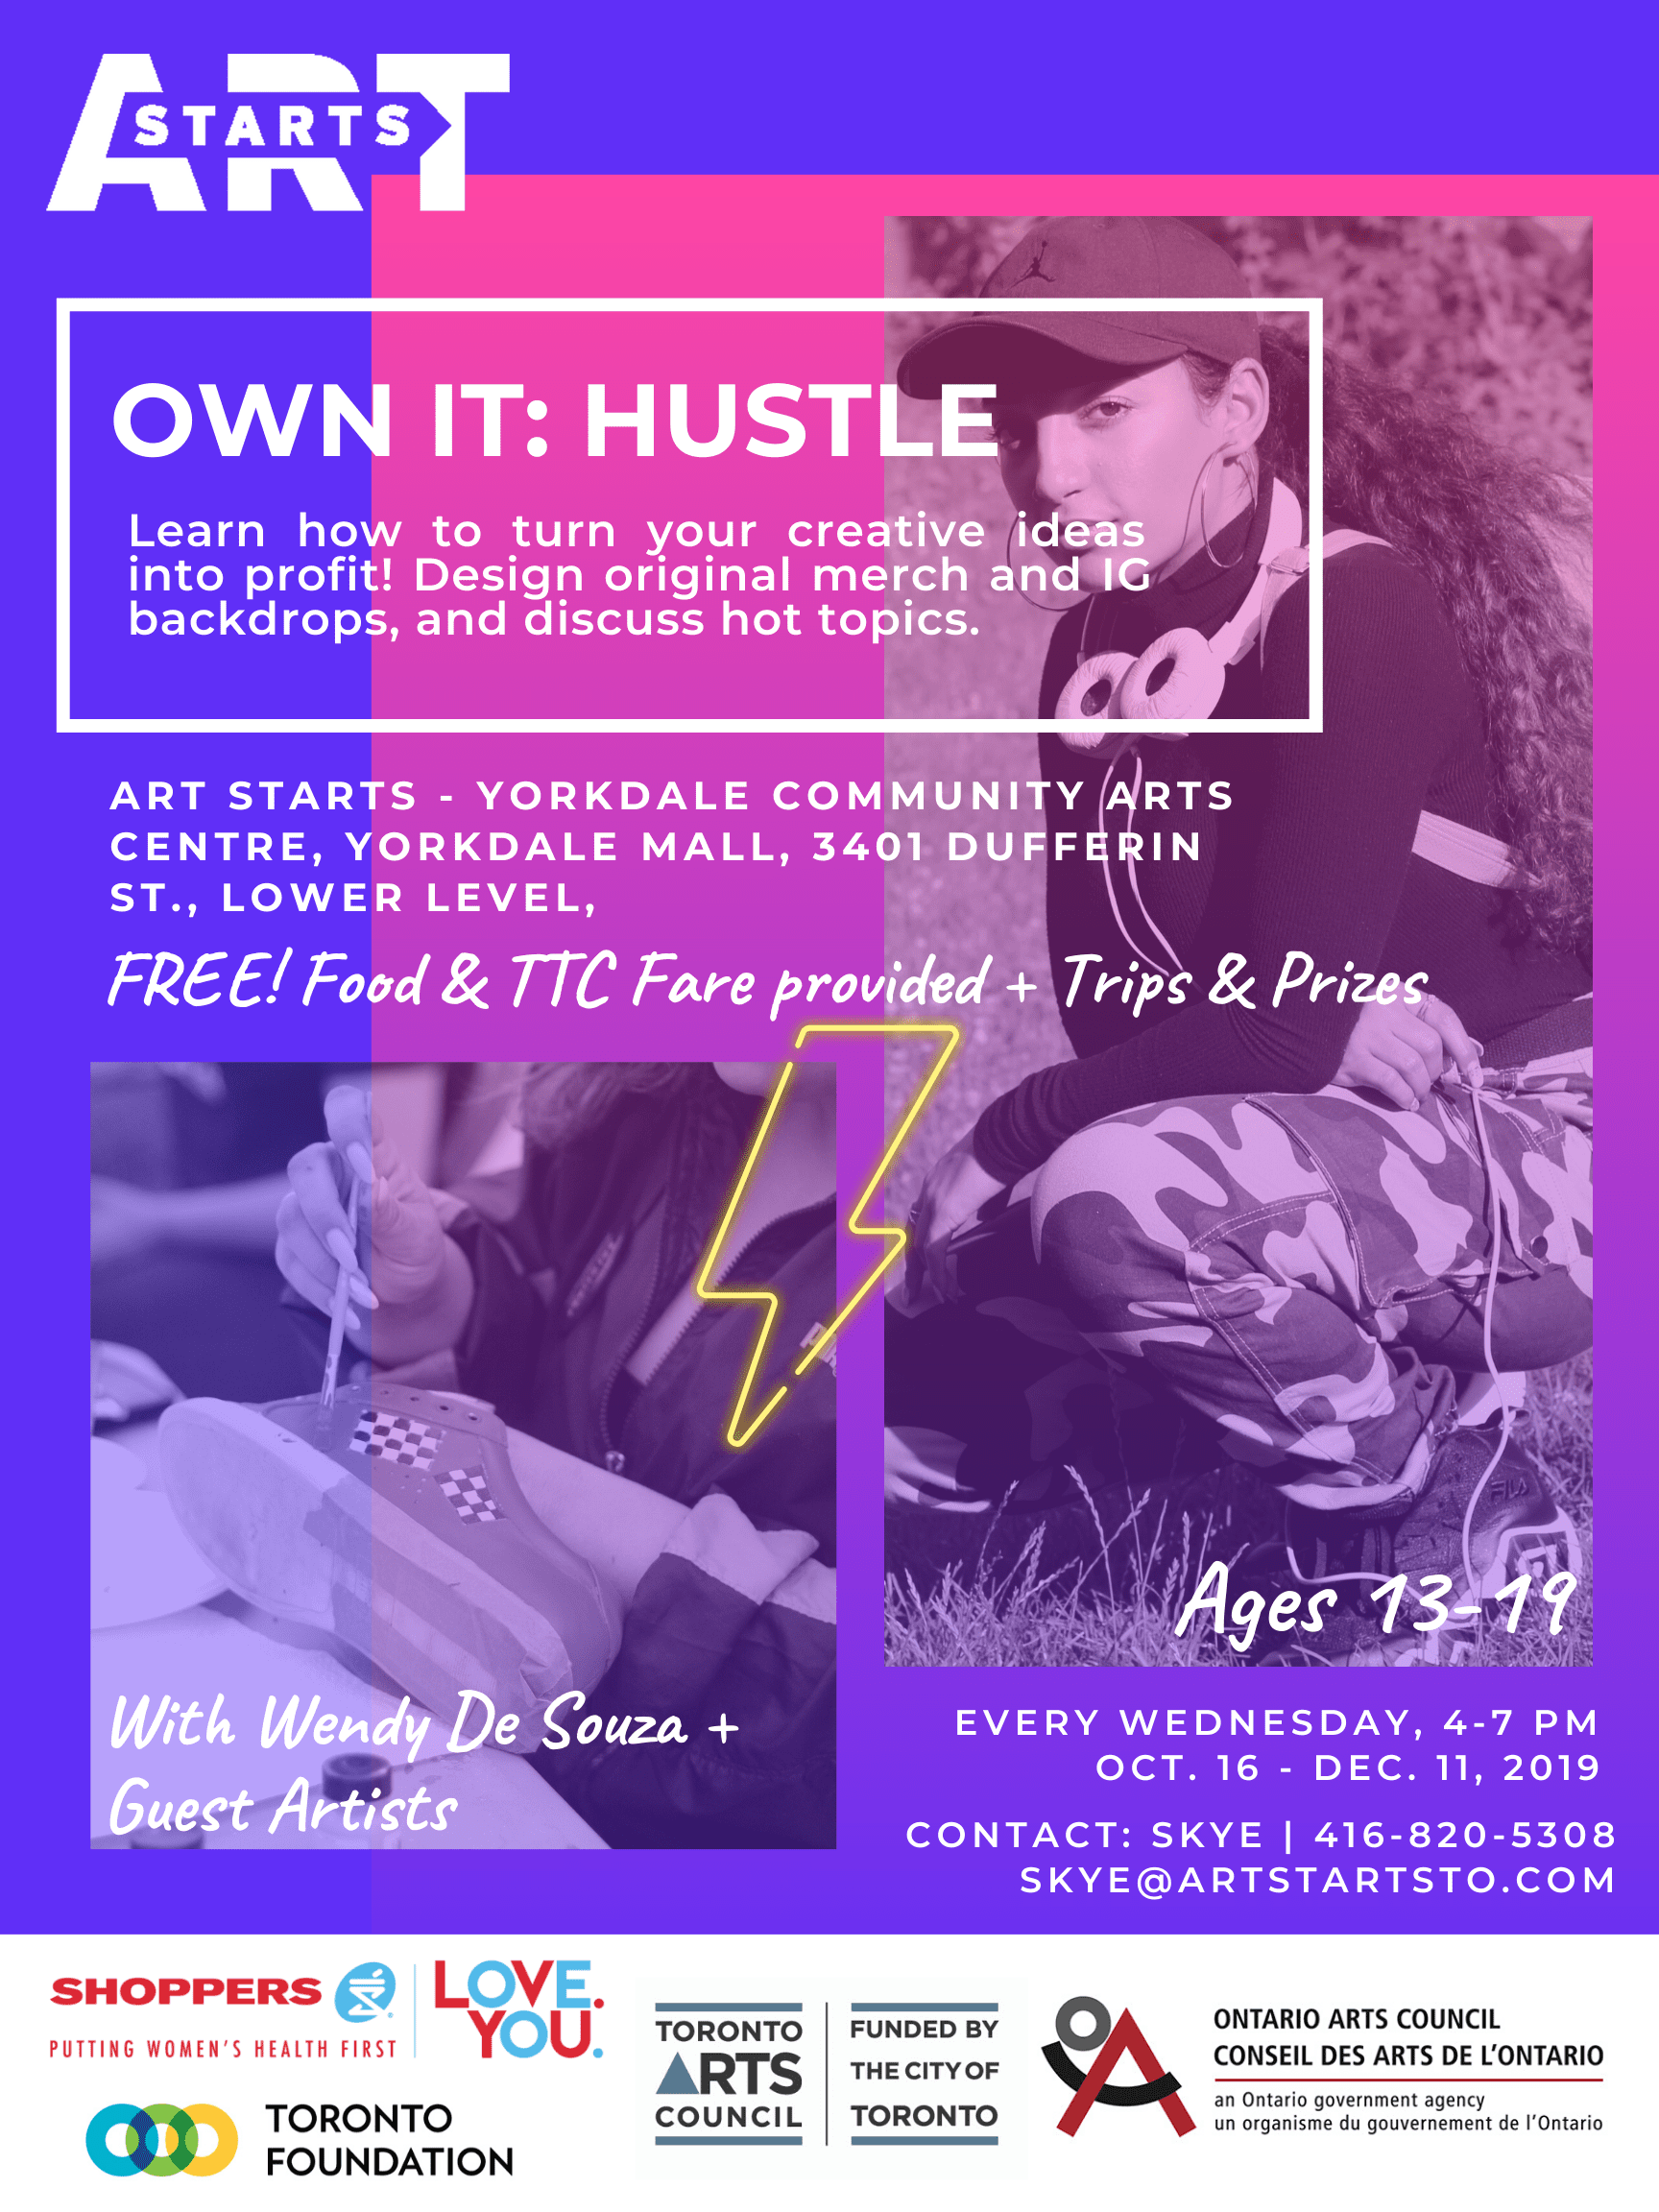 OWNIT_TheHustle_Lawrence_Fall2019 (2)